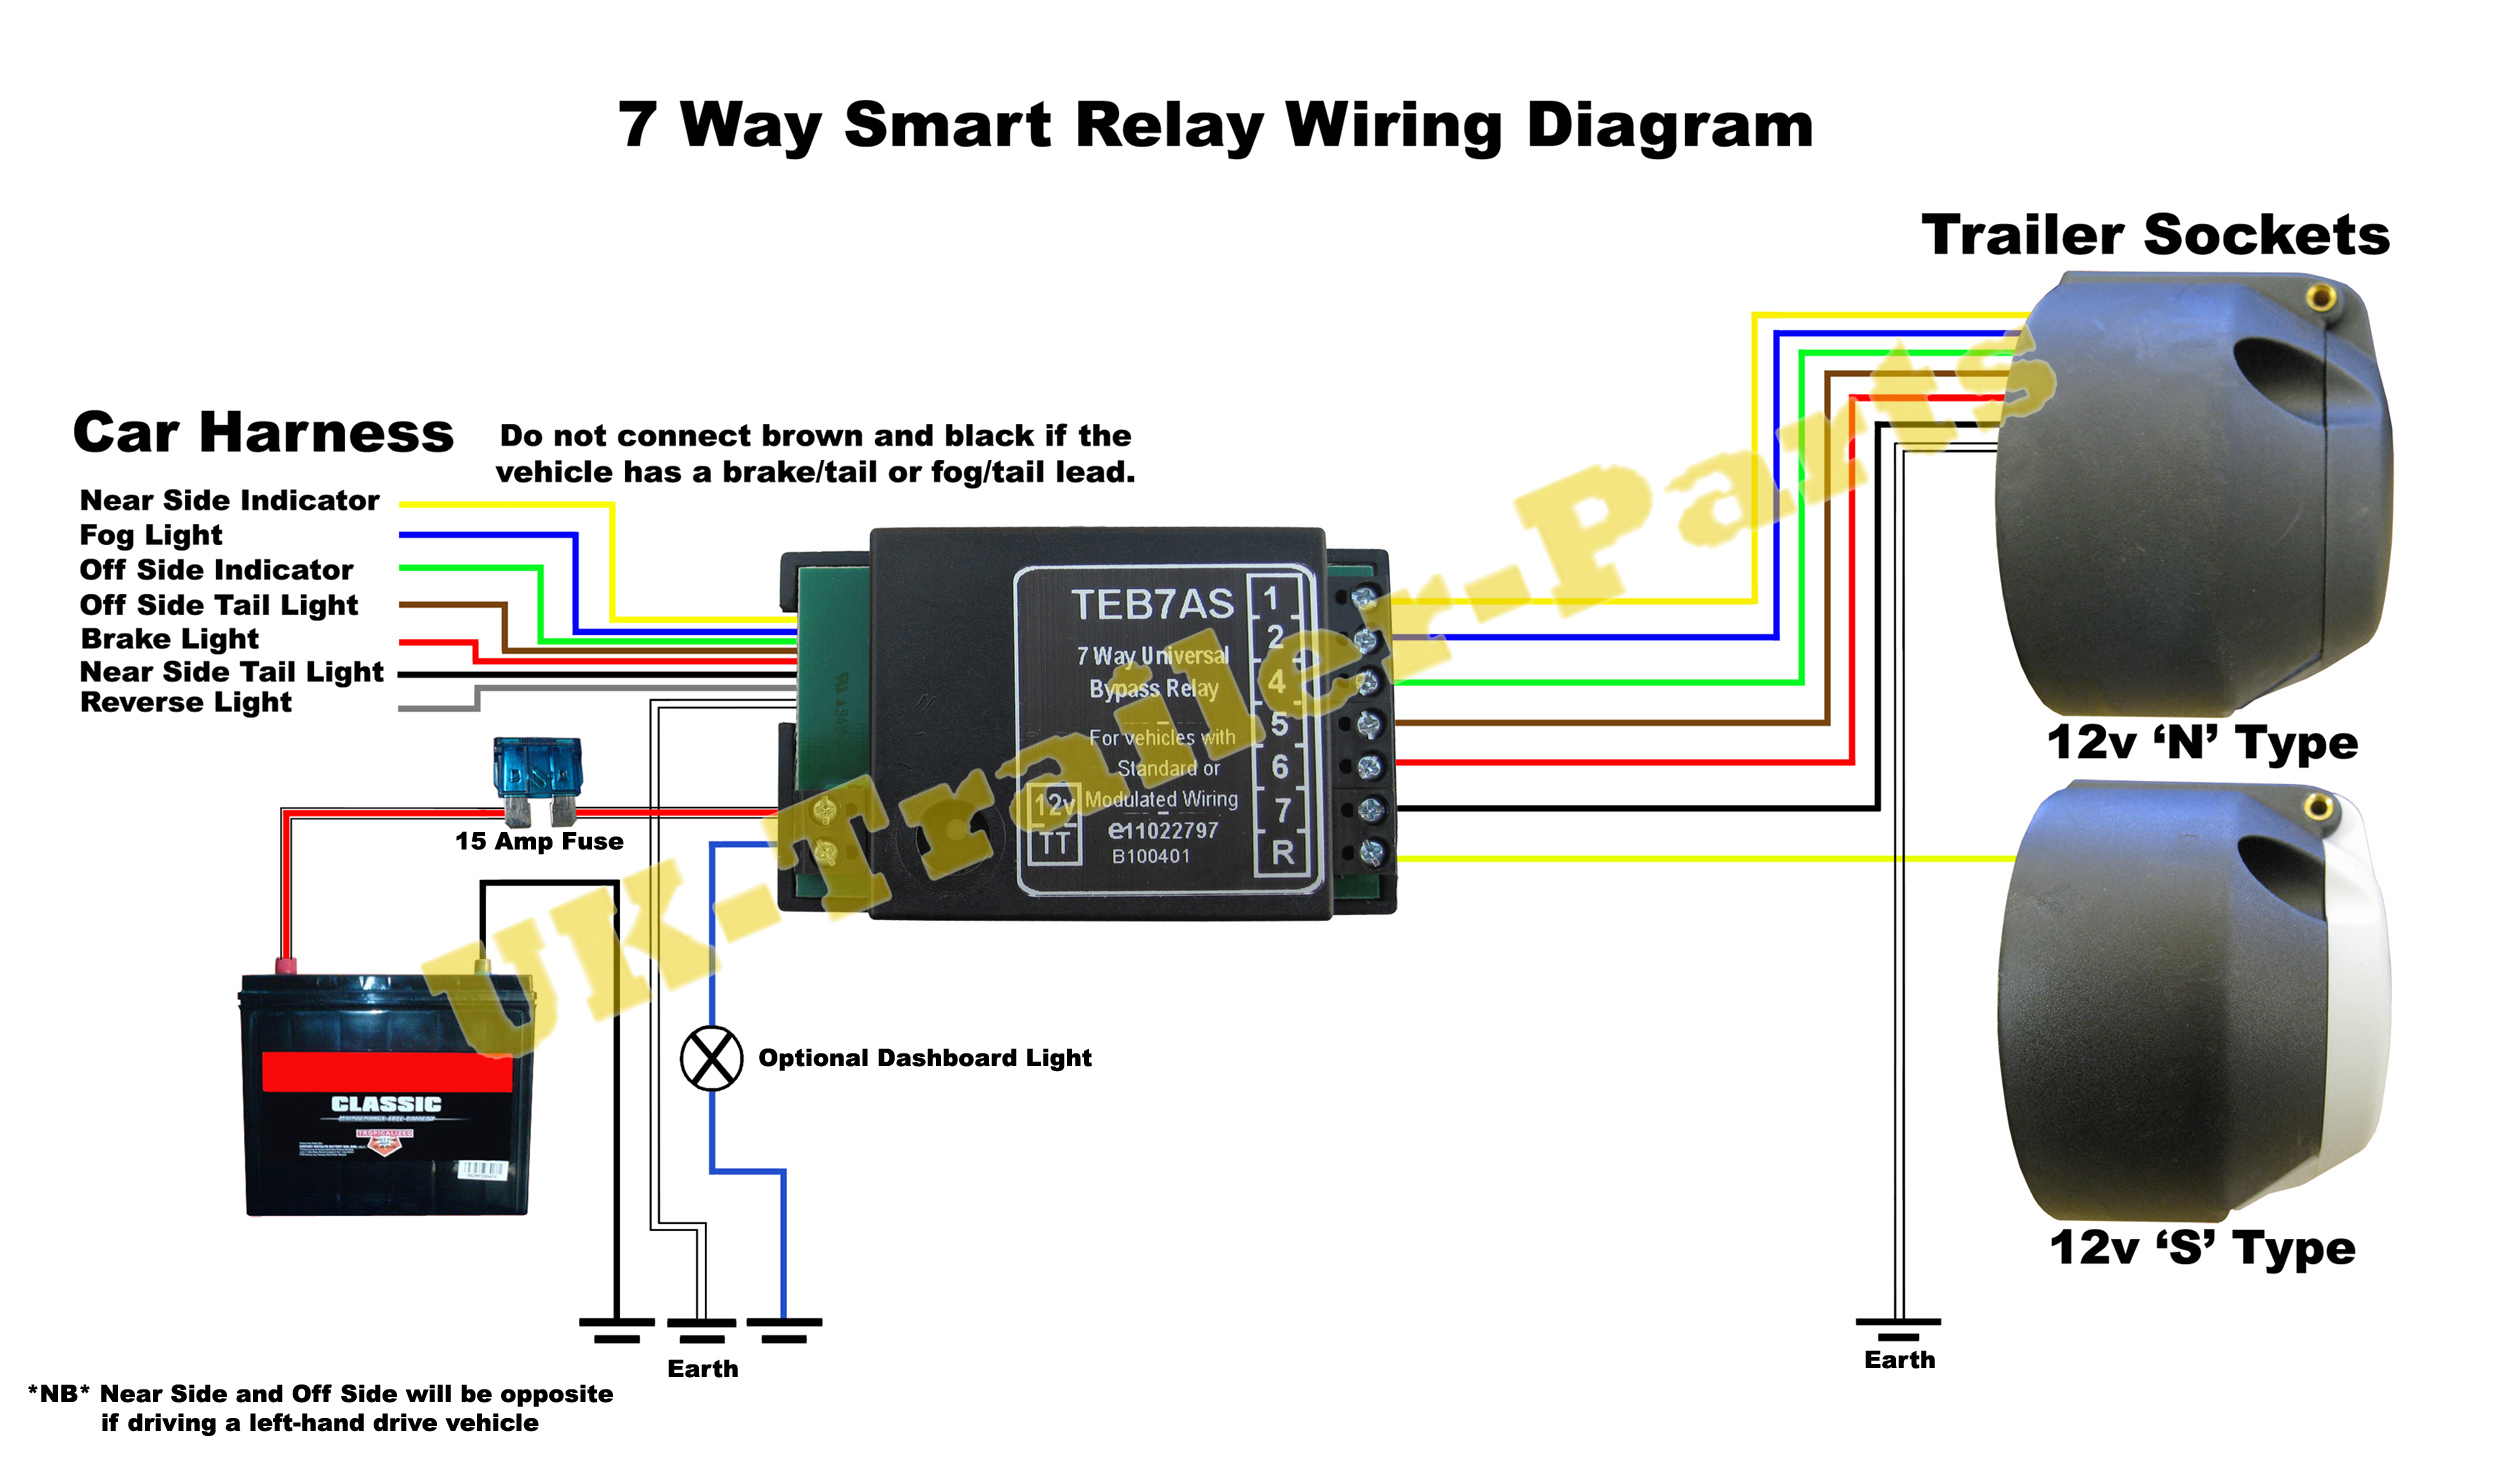 smart relay wiring diagram2 7 way universal bypass relay wiring diagram uk trailer parts vauxhall vectra towbar wiring diagram at edmiracle.co